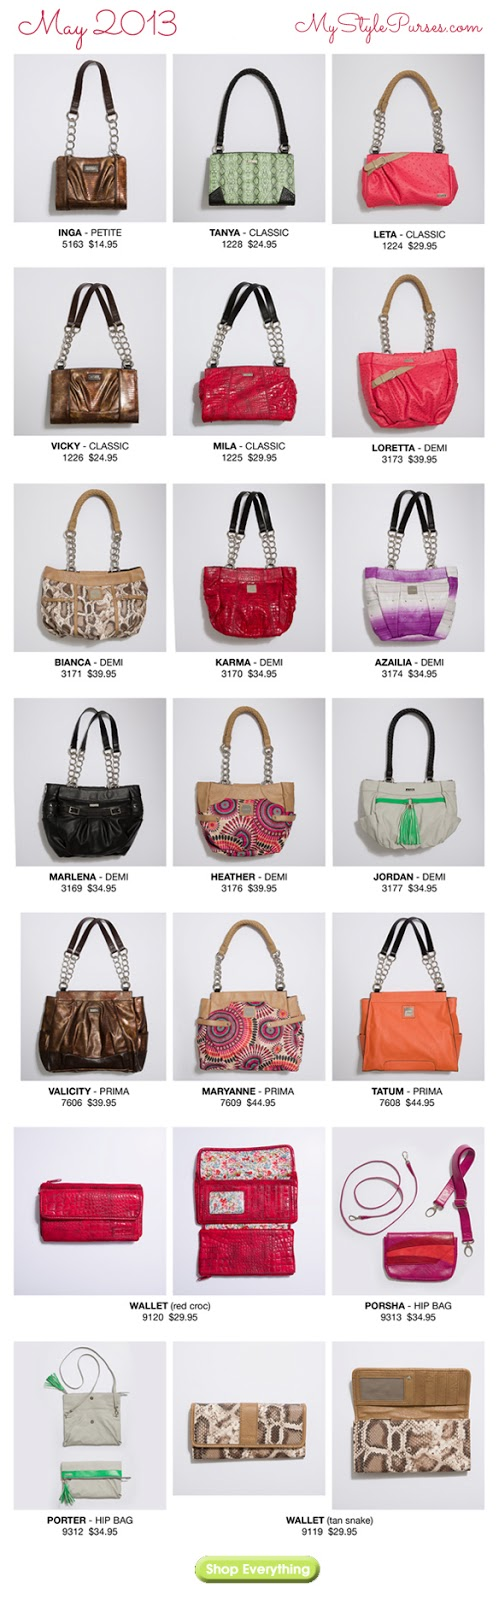 Shop the Miche May 2013 Product Release from MyStylePurses.com